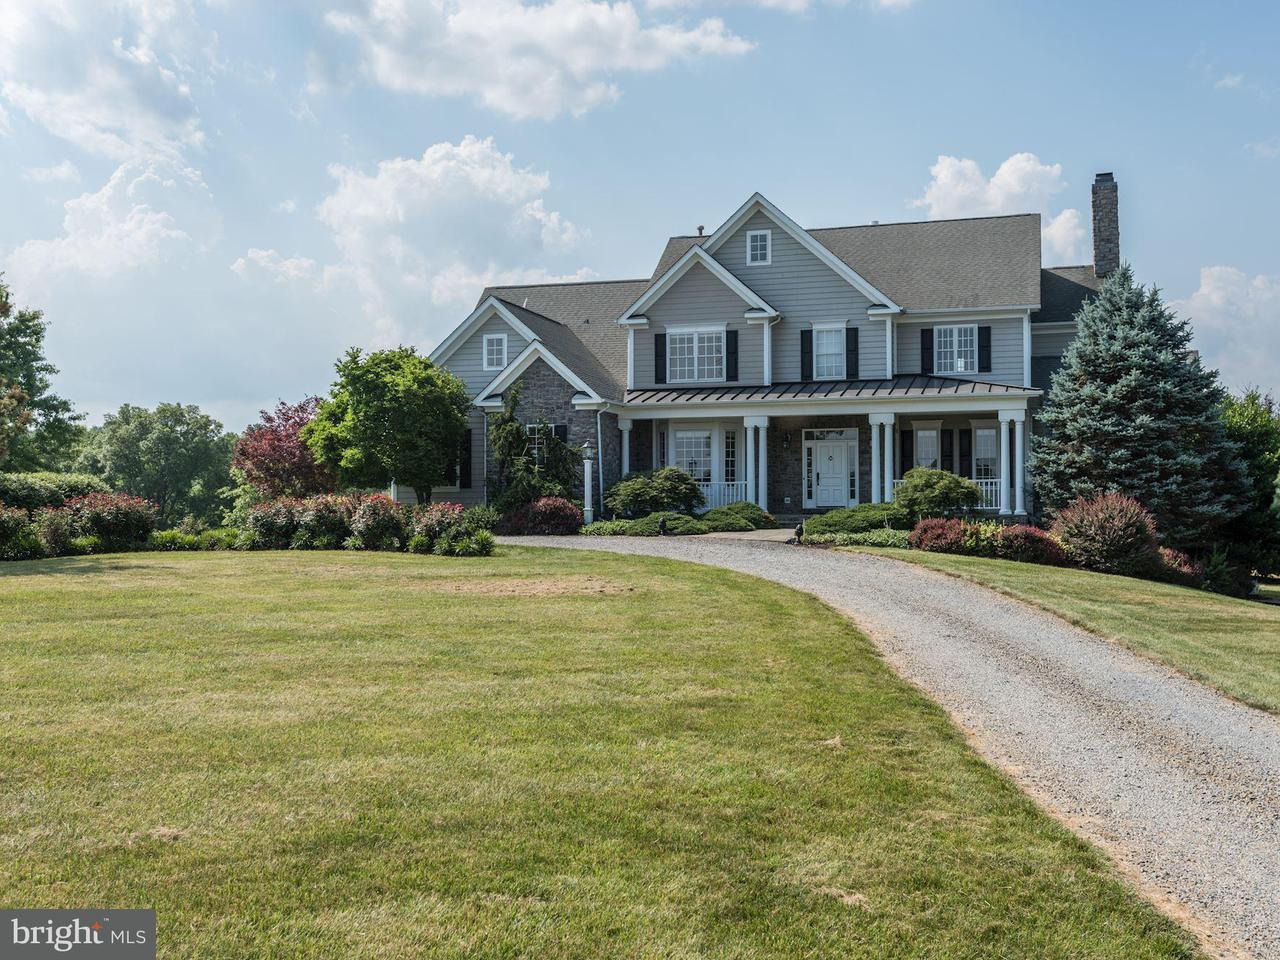 Single Family Home for Sale at 14777 CLOVER HILL Road 14777 CLOVER HILL Road Waterford, Virginia 20197 United States